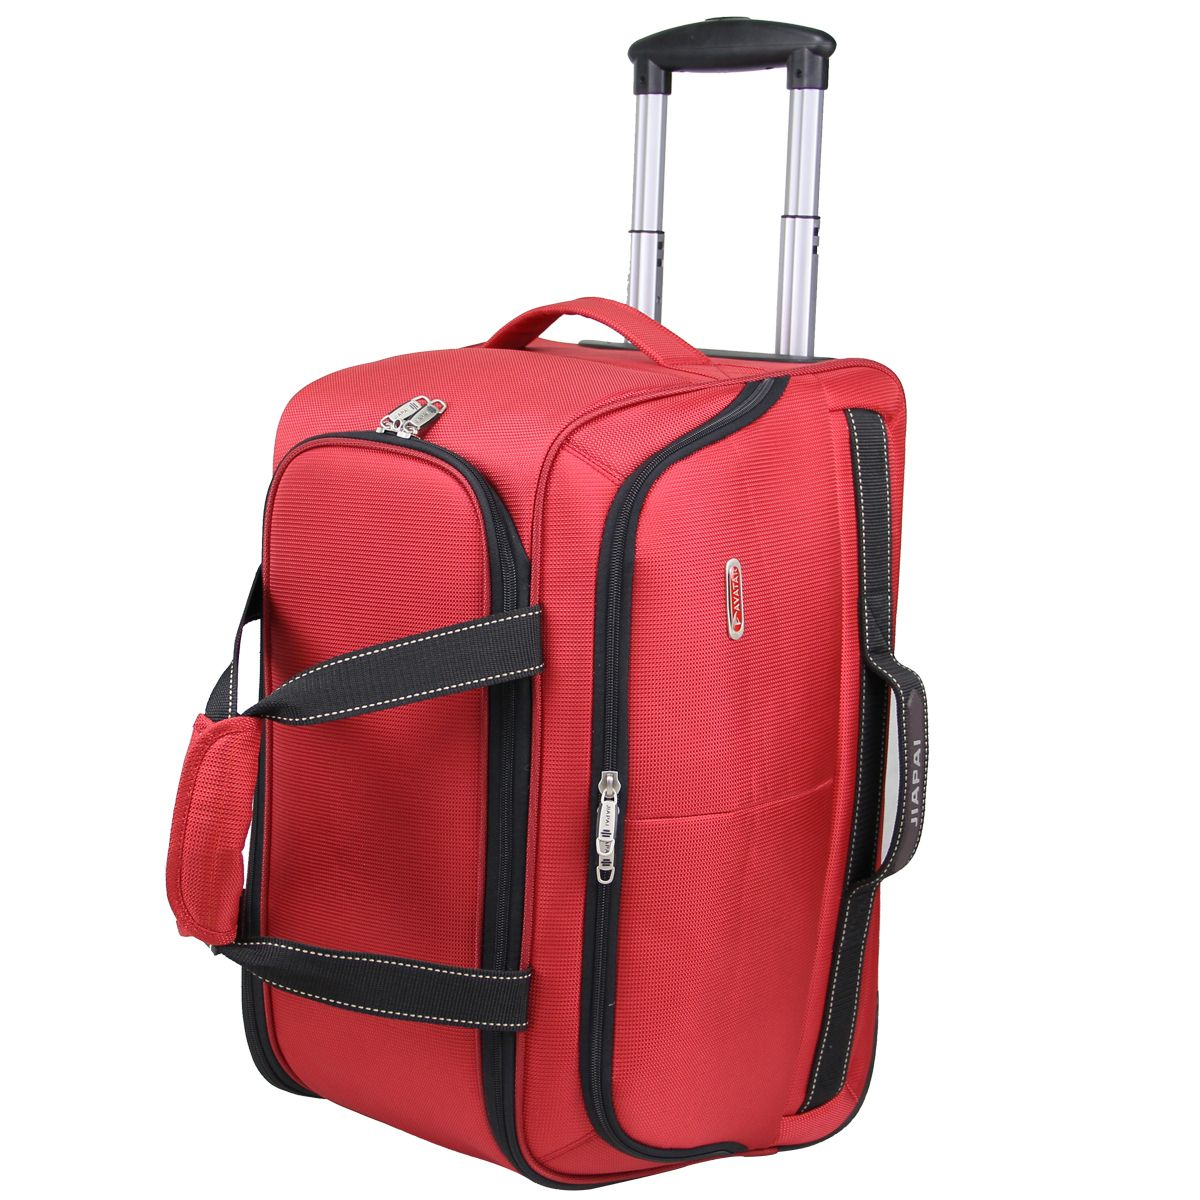 Suitcases are the most commonly used travel bags for the long ...